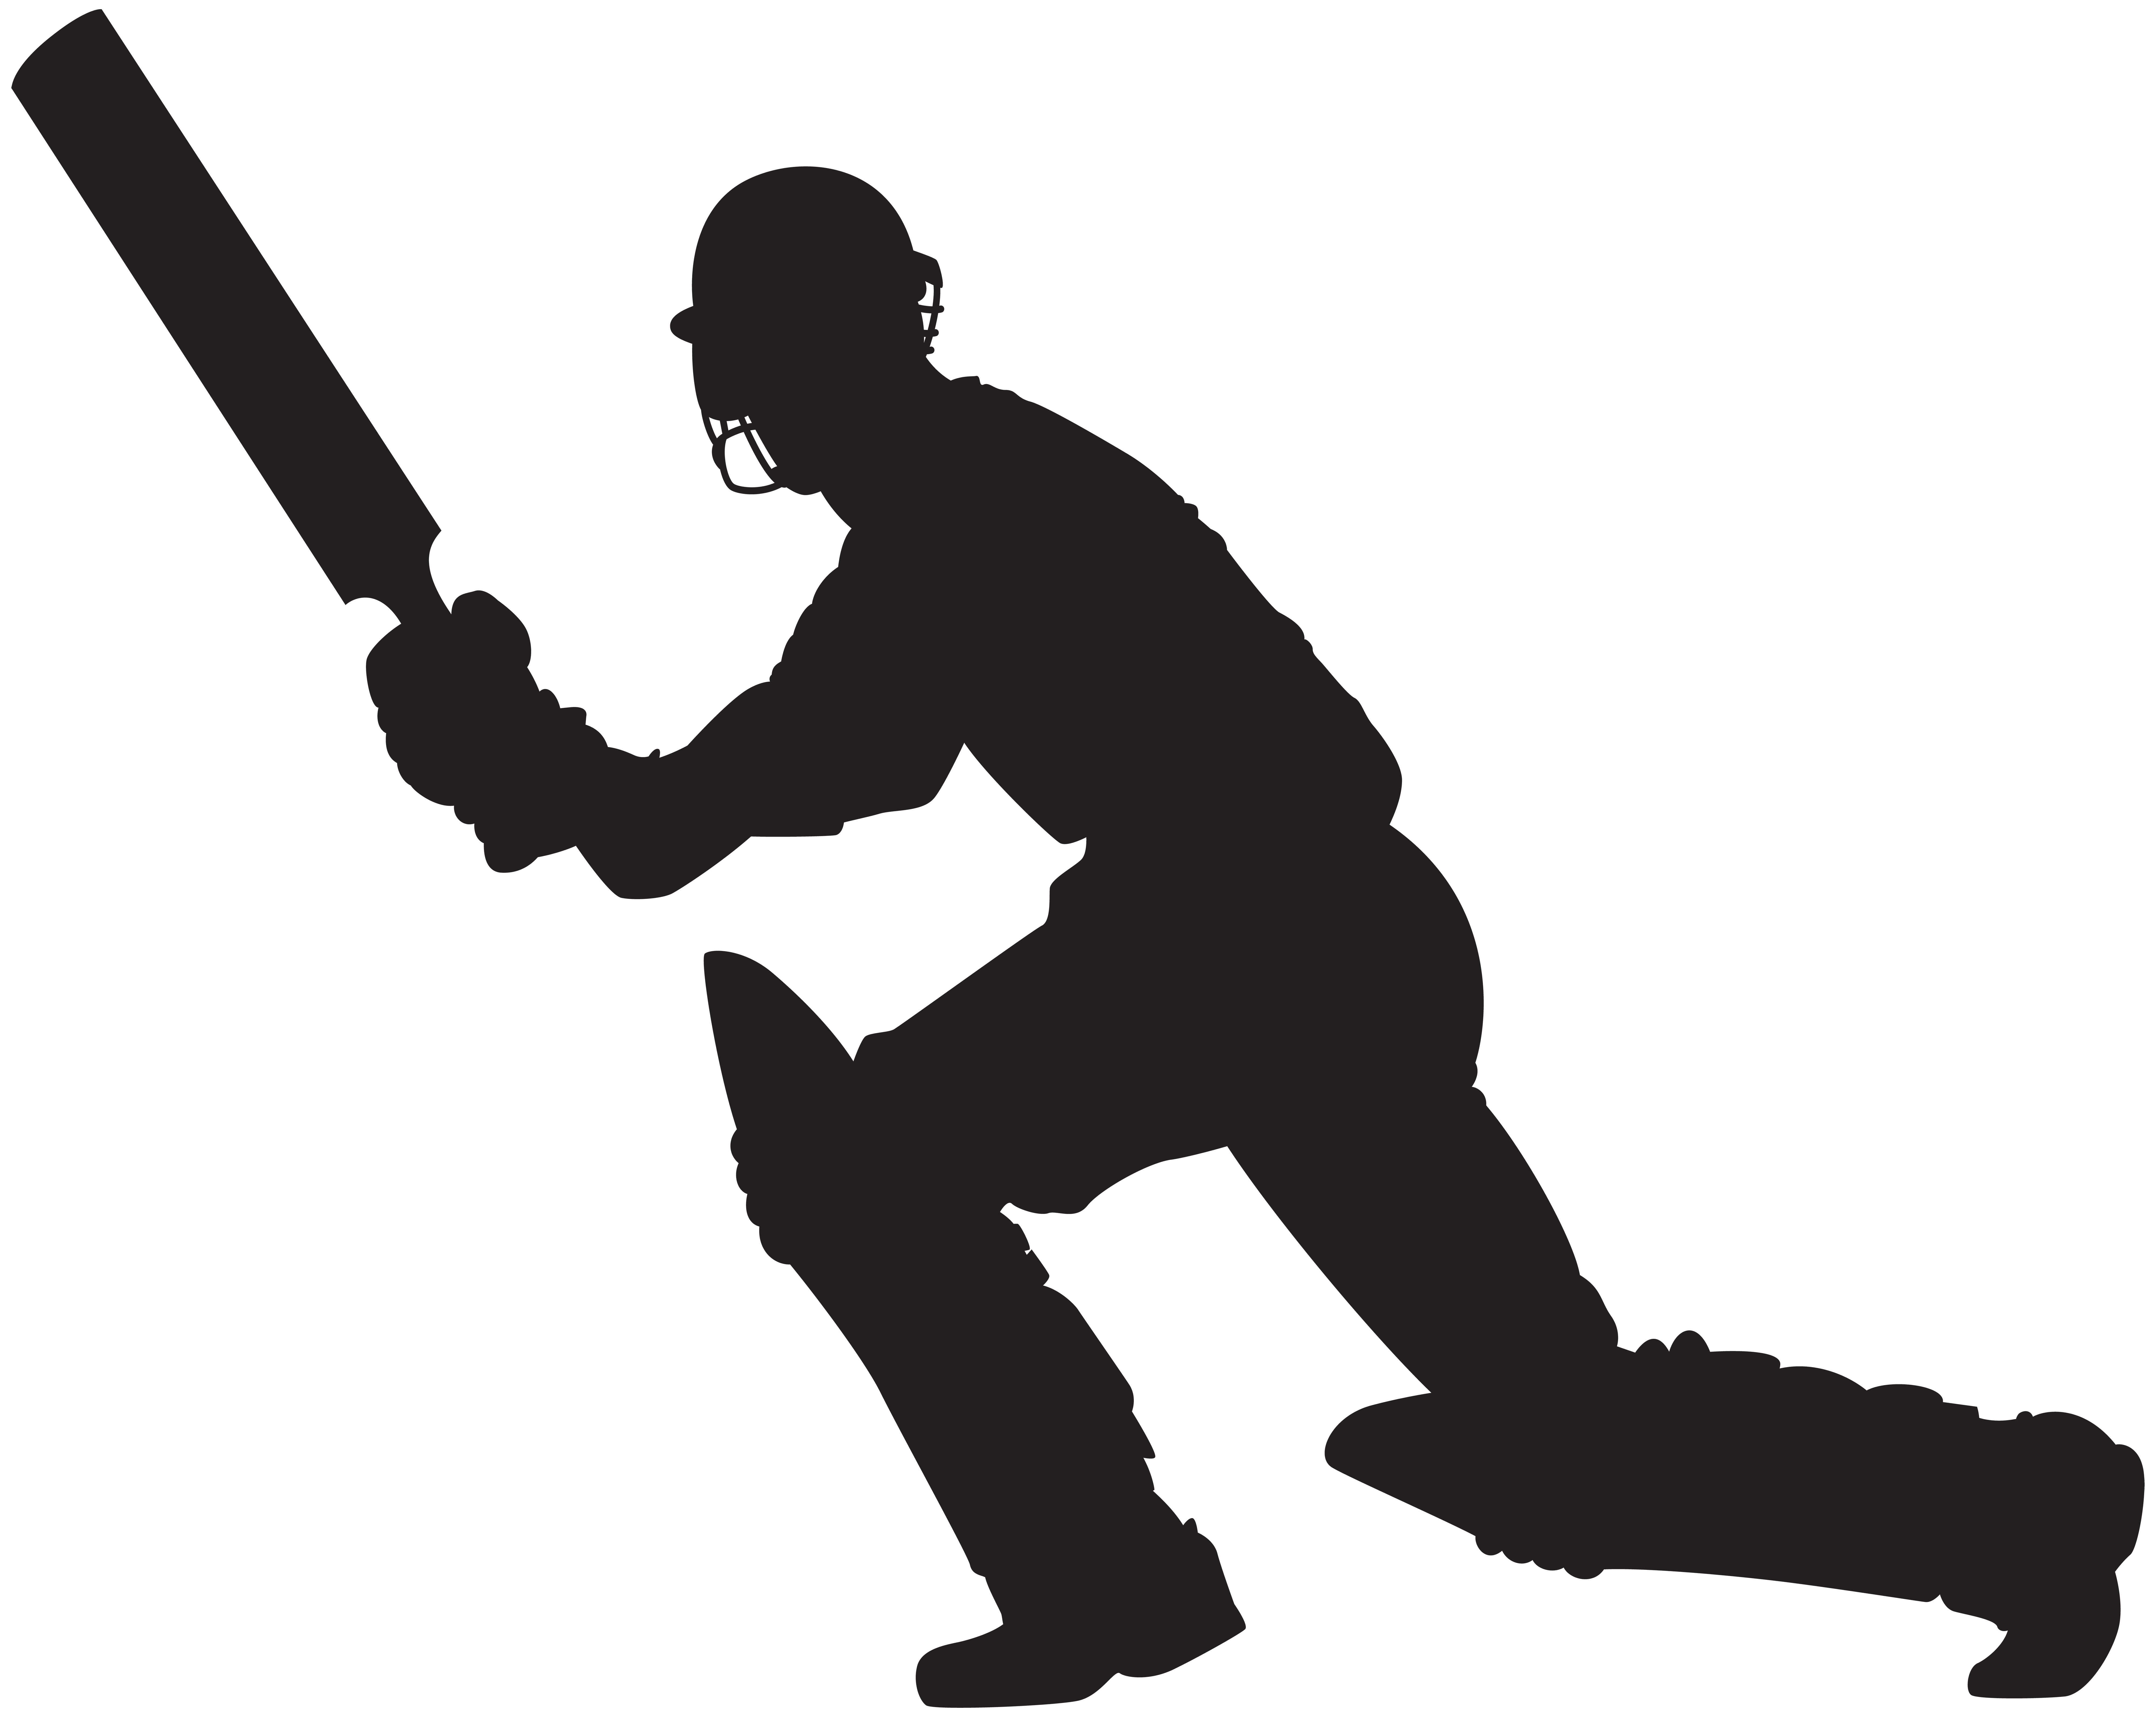 Sports clipart cricket, Sports cricket Transparent FREE for.